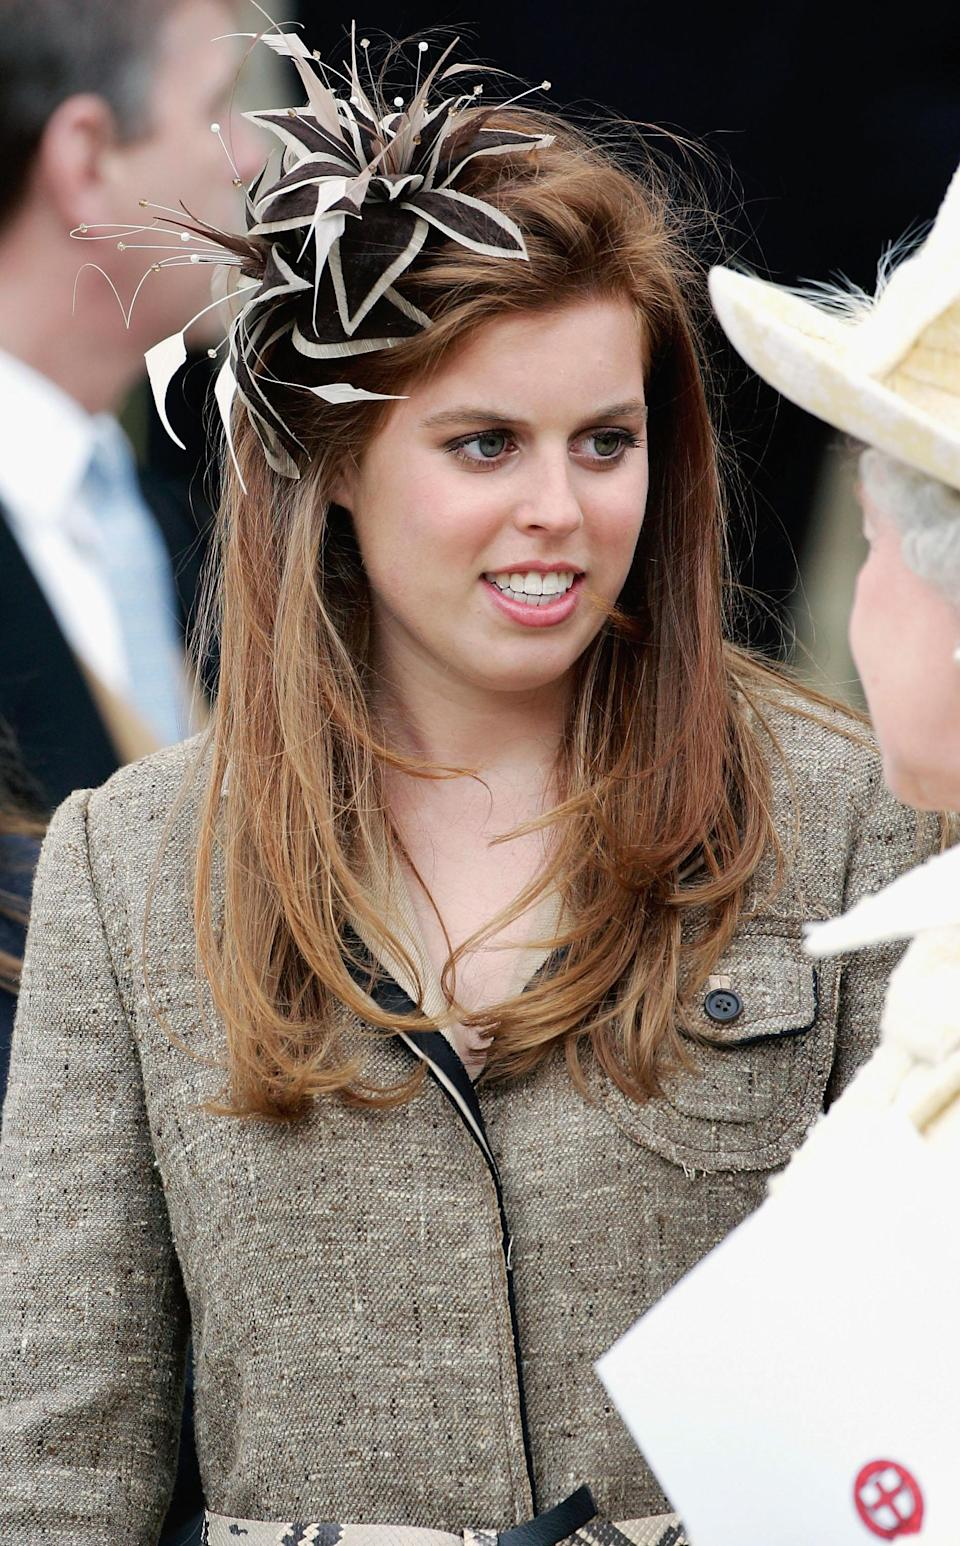 """<div class=""""caption-credit"""">Photo by: Tim Graham/Getty Images</div>Princess Beatrice, the daughter of Prince Andrew and the Duchess of York, as well as a popular style maven, is seen here at Windsor Castle at age 17. <br>"""